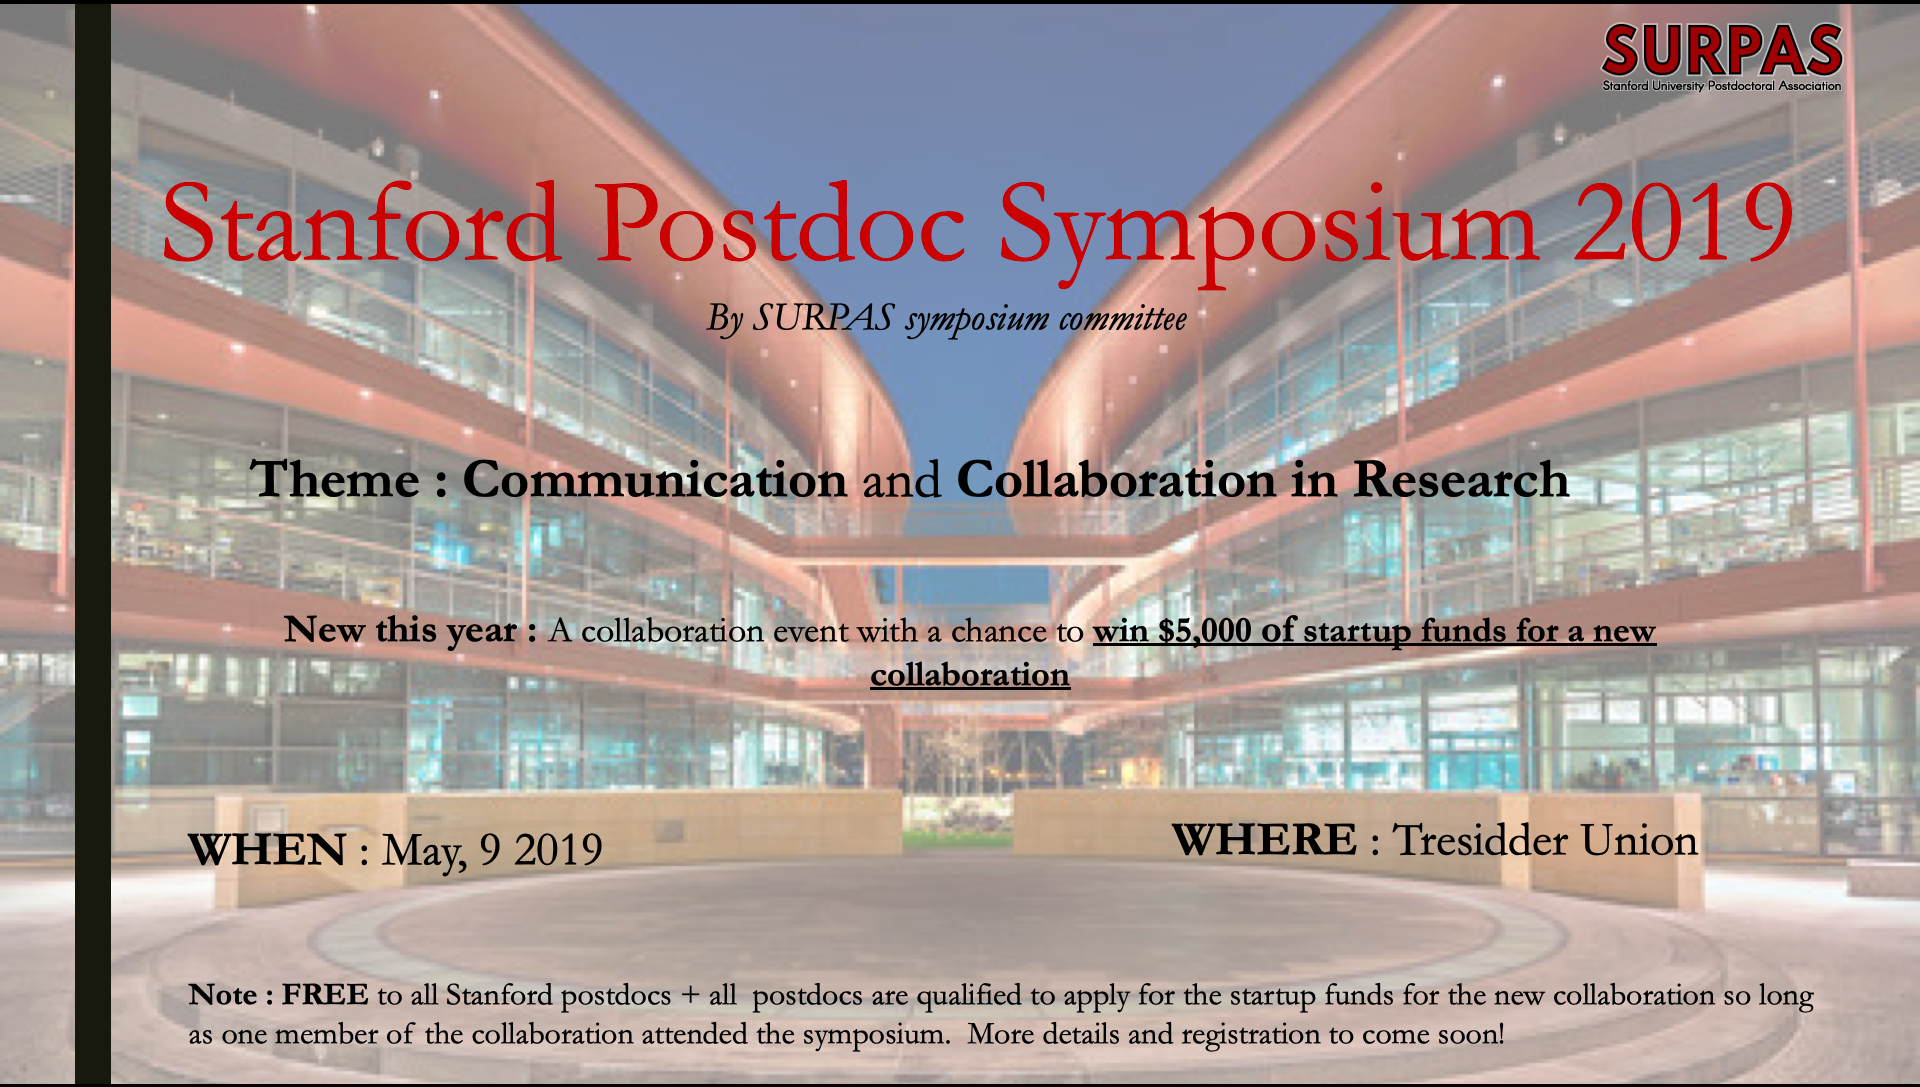 Registration now open!  What: SURPAS Postdoc Symposium 2019  When: May 9, 2019  Where: Tresidder Union  Please join the Stanford University Postdoctoral Association for our annual Postdoc Symposium on May 9th, 2019. We will be highlighting communication and collaboration in research with several workshops and lightning talks from postdoc throughout the day. Also featuring a new collaboration grant opportunity called CONNECT Grants (info below) with a chance to win up to $5,000 of startup funds for a new collaboration. FREE to all Stanford postdocs. Registration opening soon!